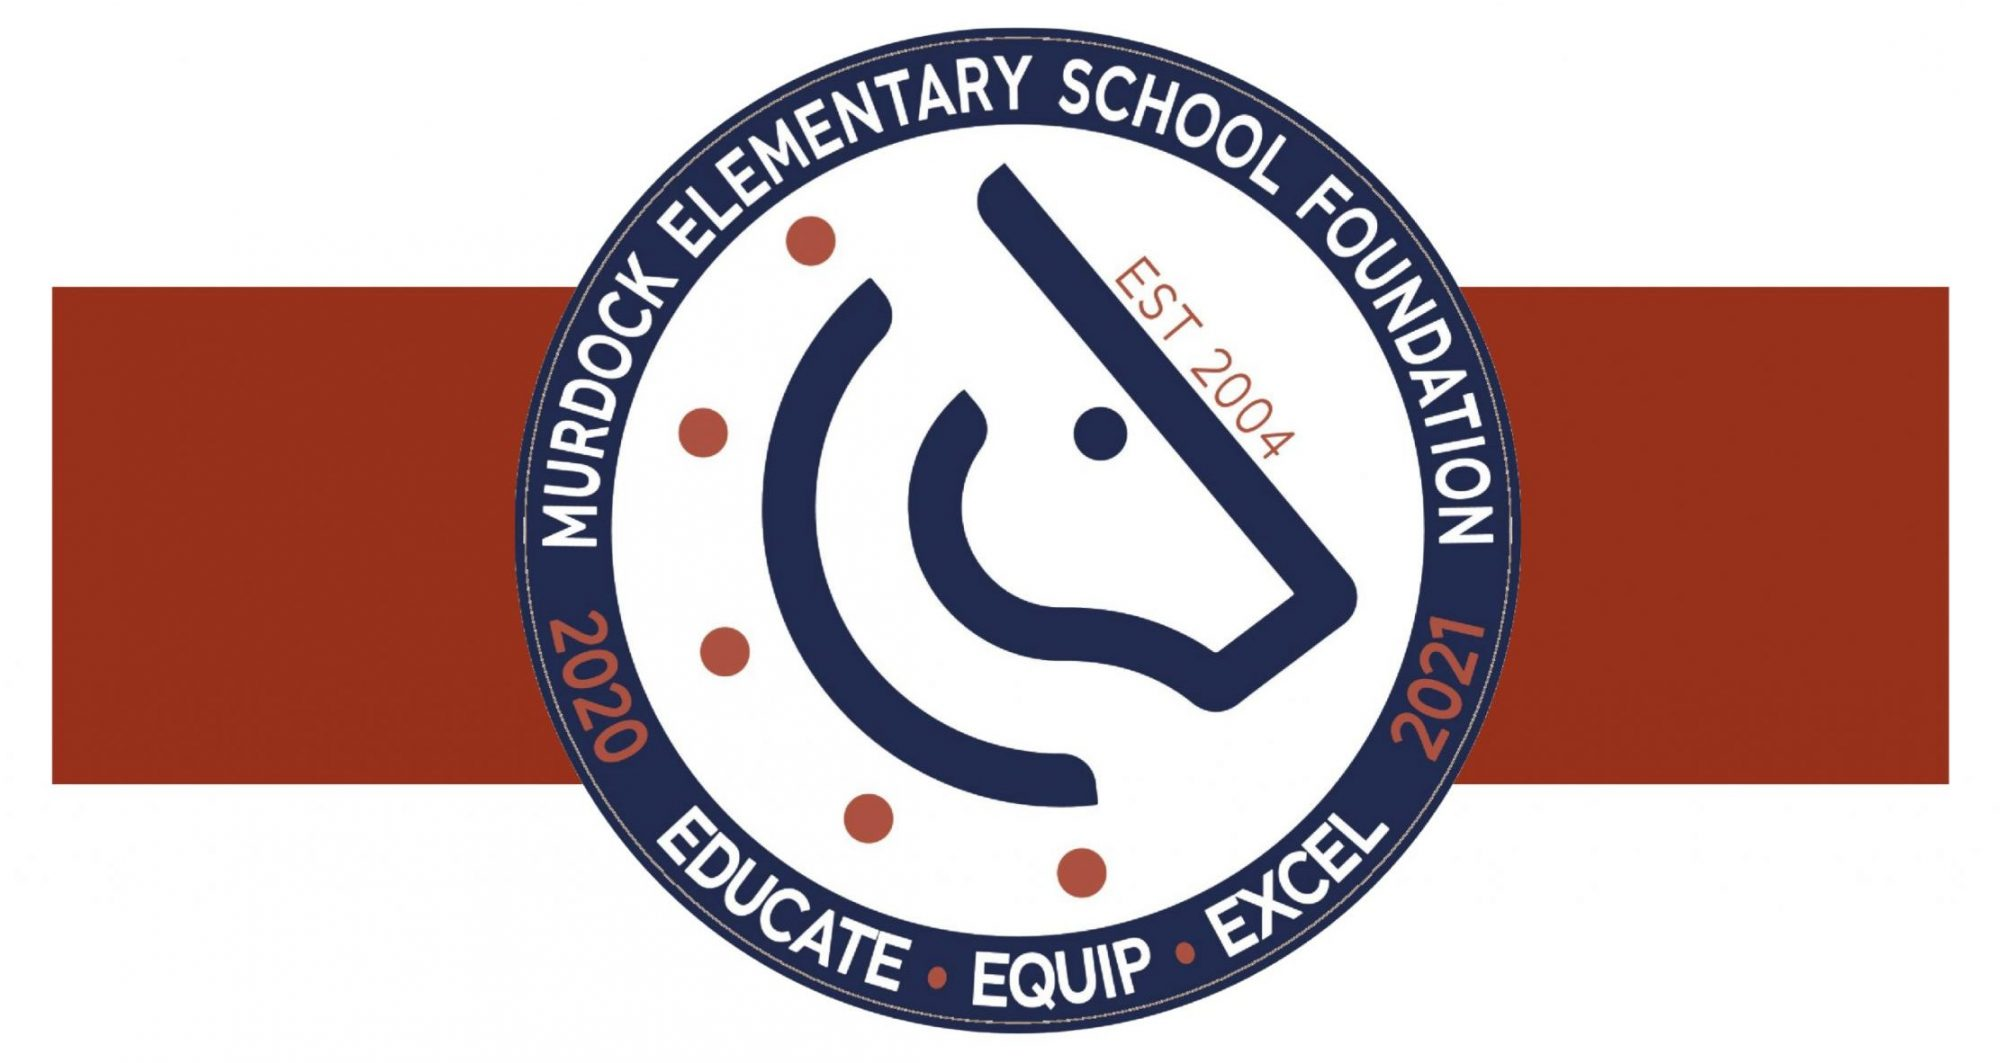 MESF: Murdock Elementary School Foundation Inc.